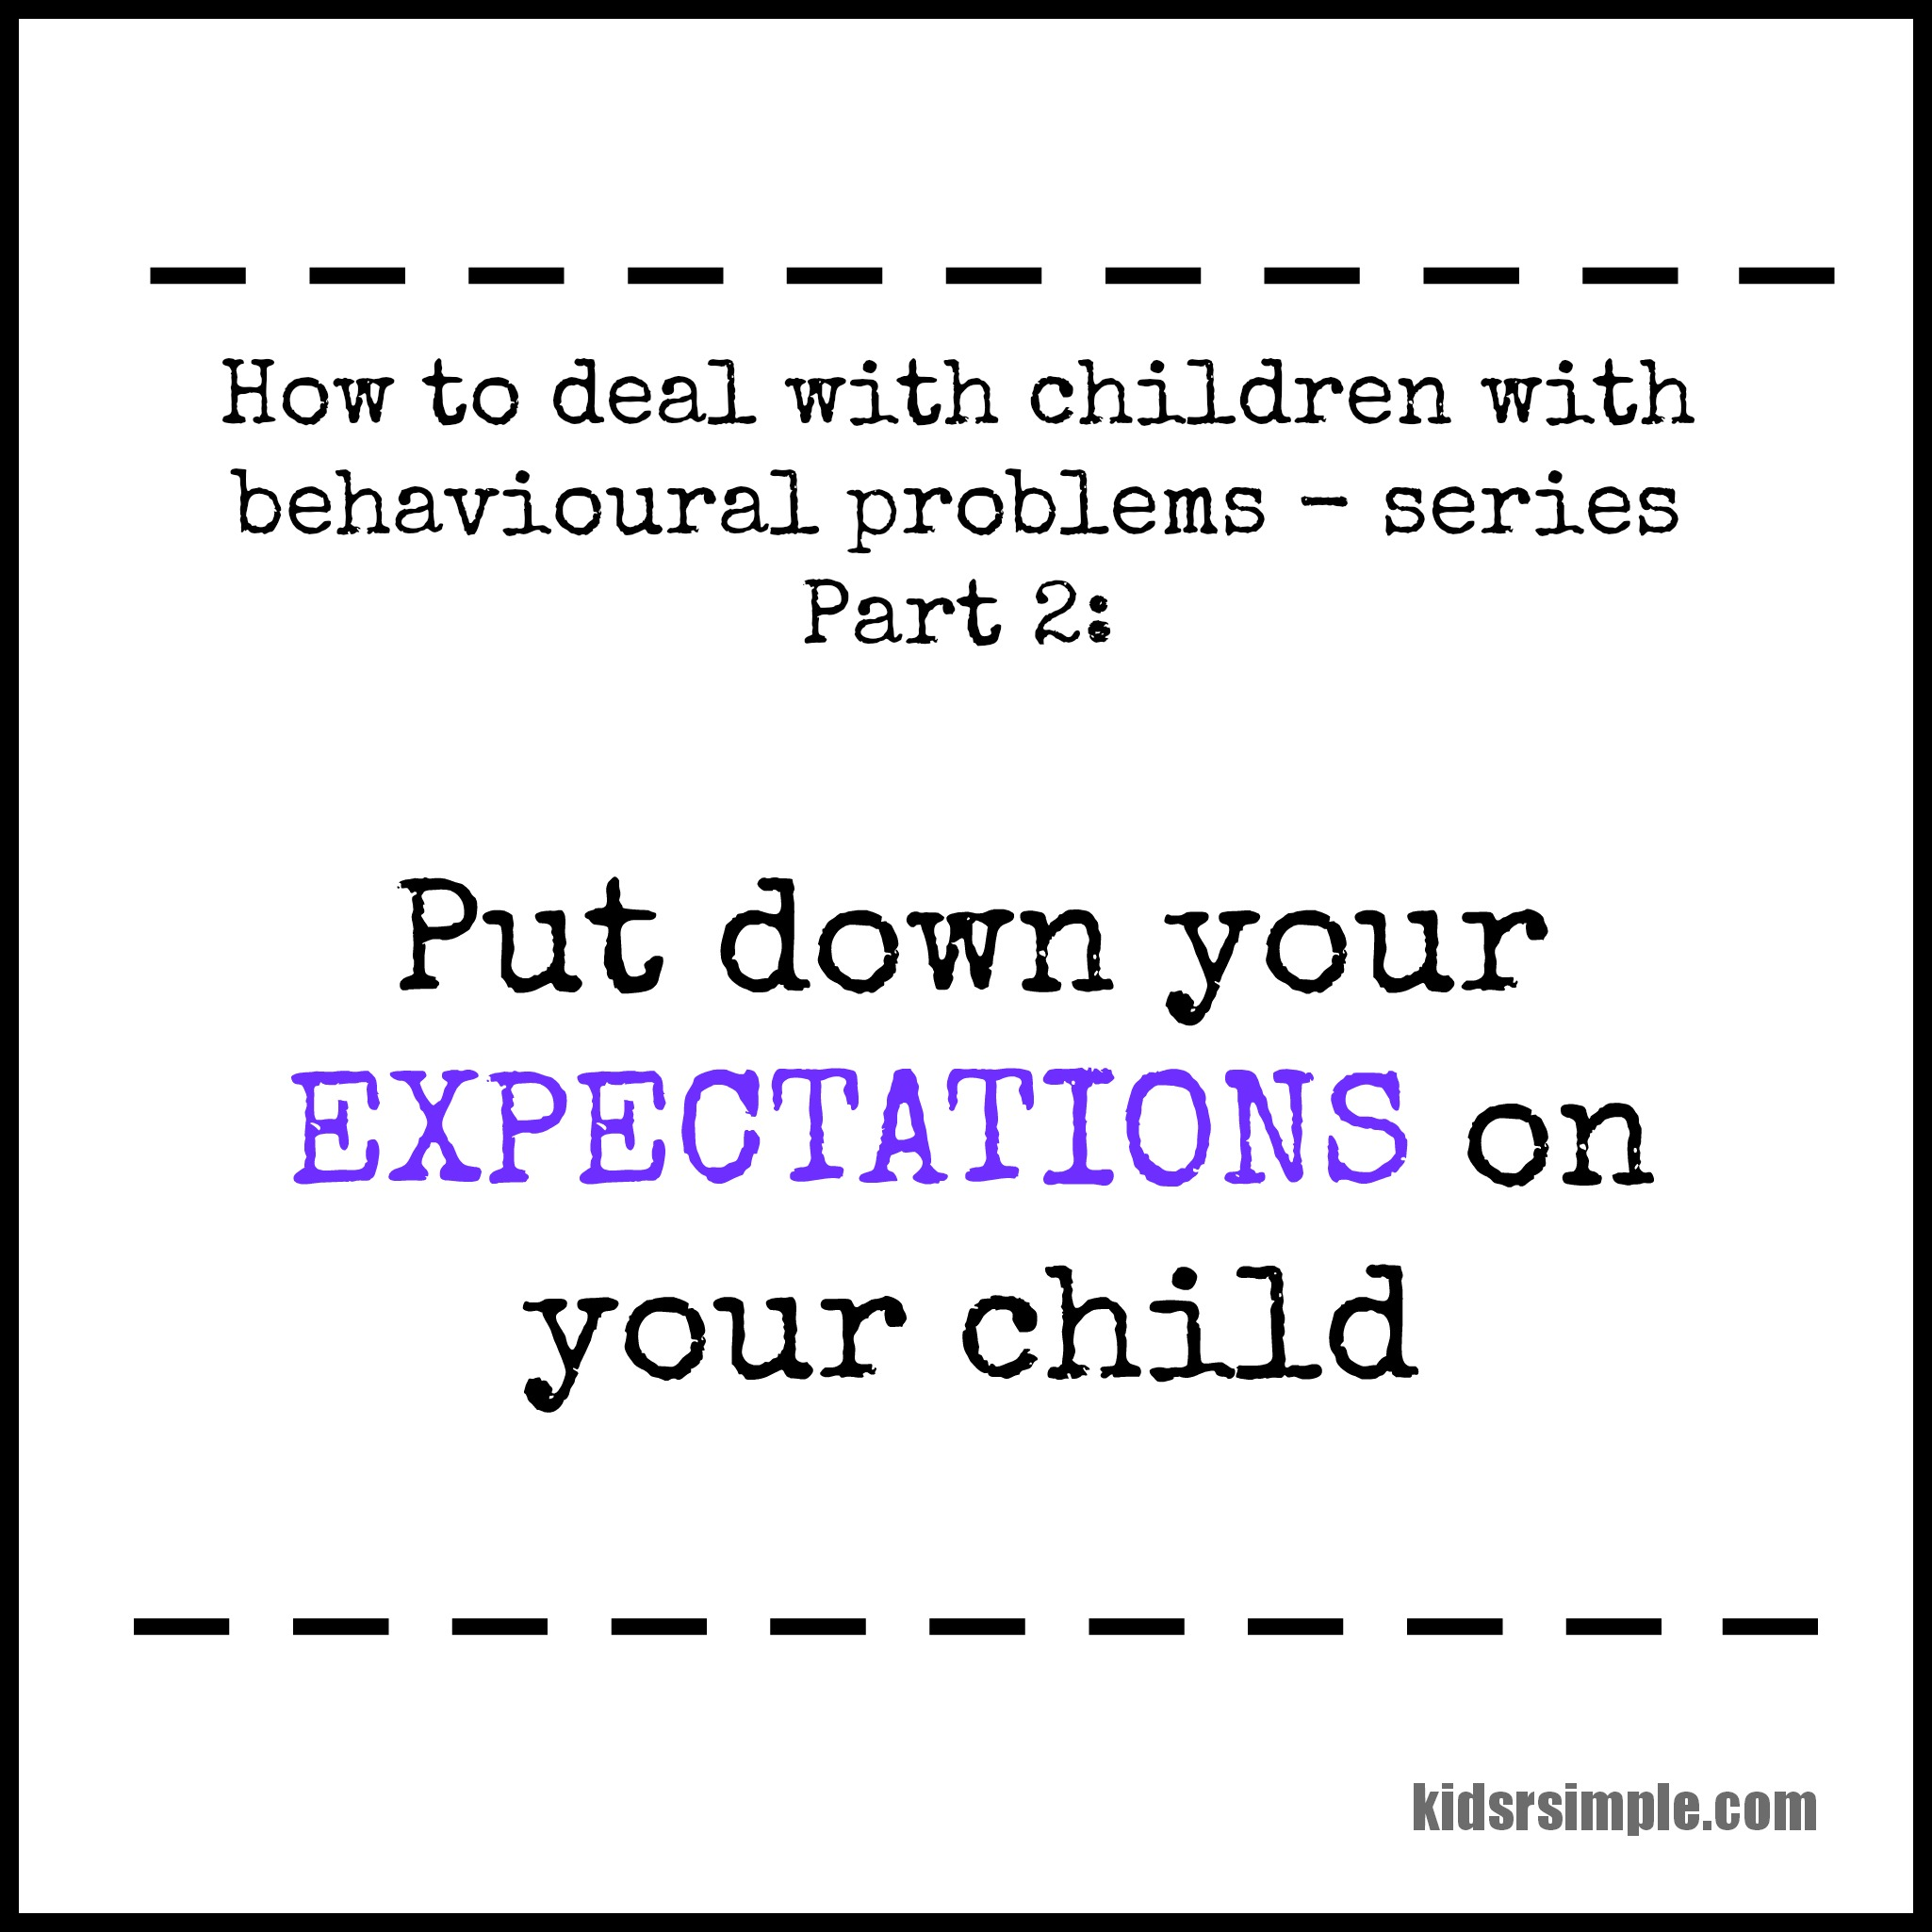 how to deal children behavioural problems part 2 put how to deal children behavioural problems part 2 put down your expectations on your child